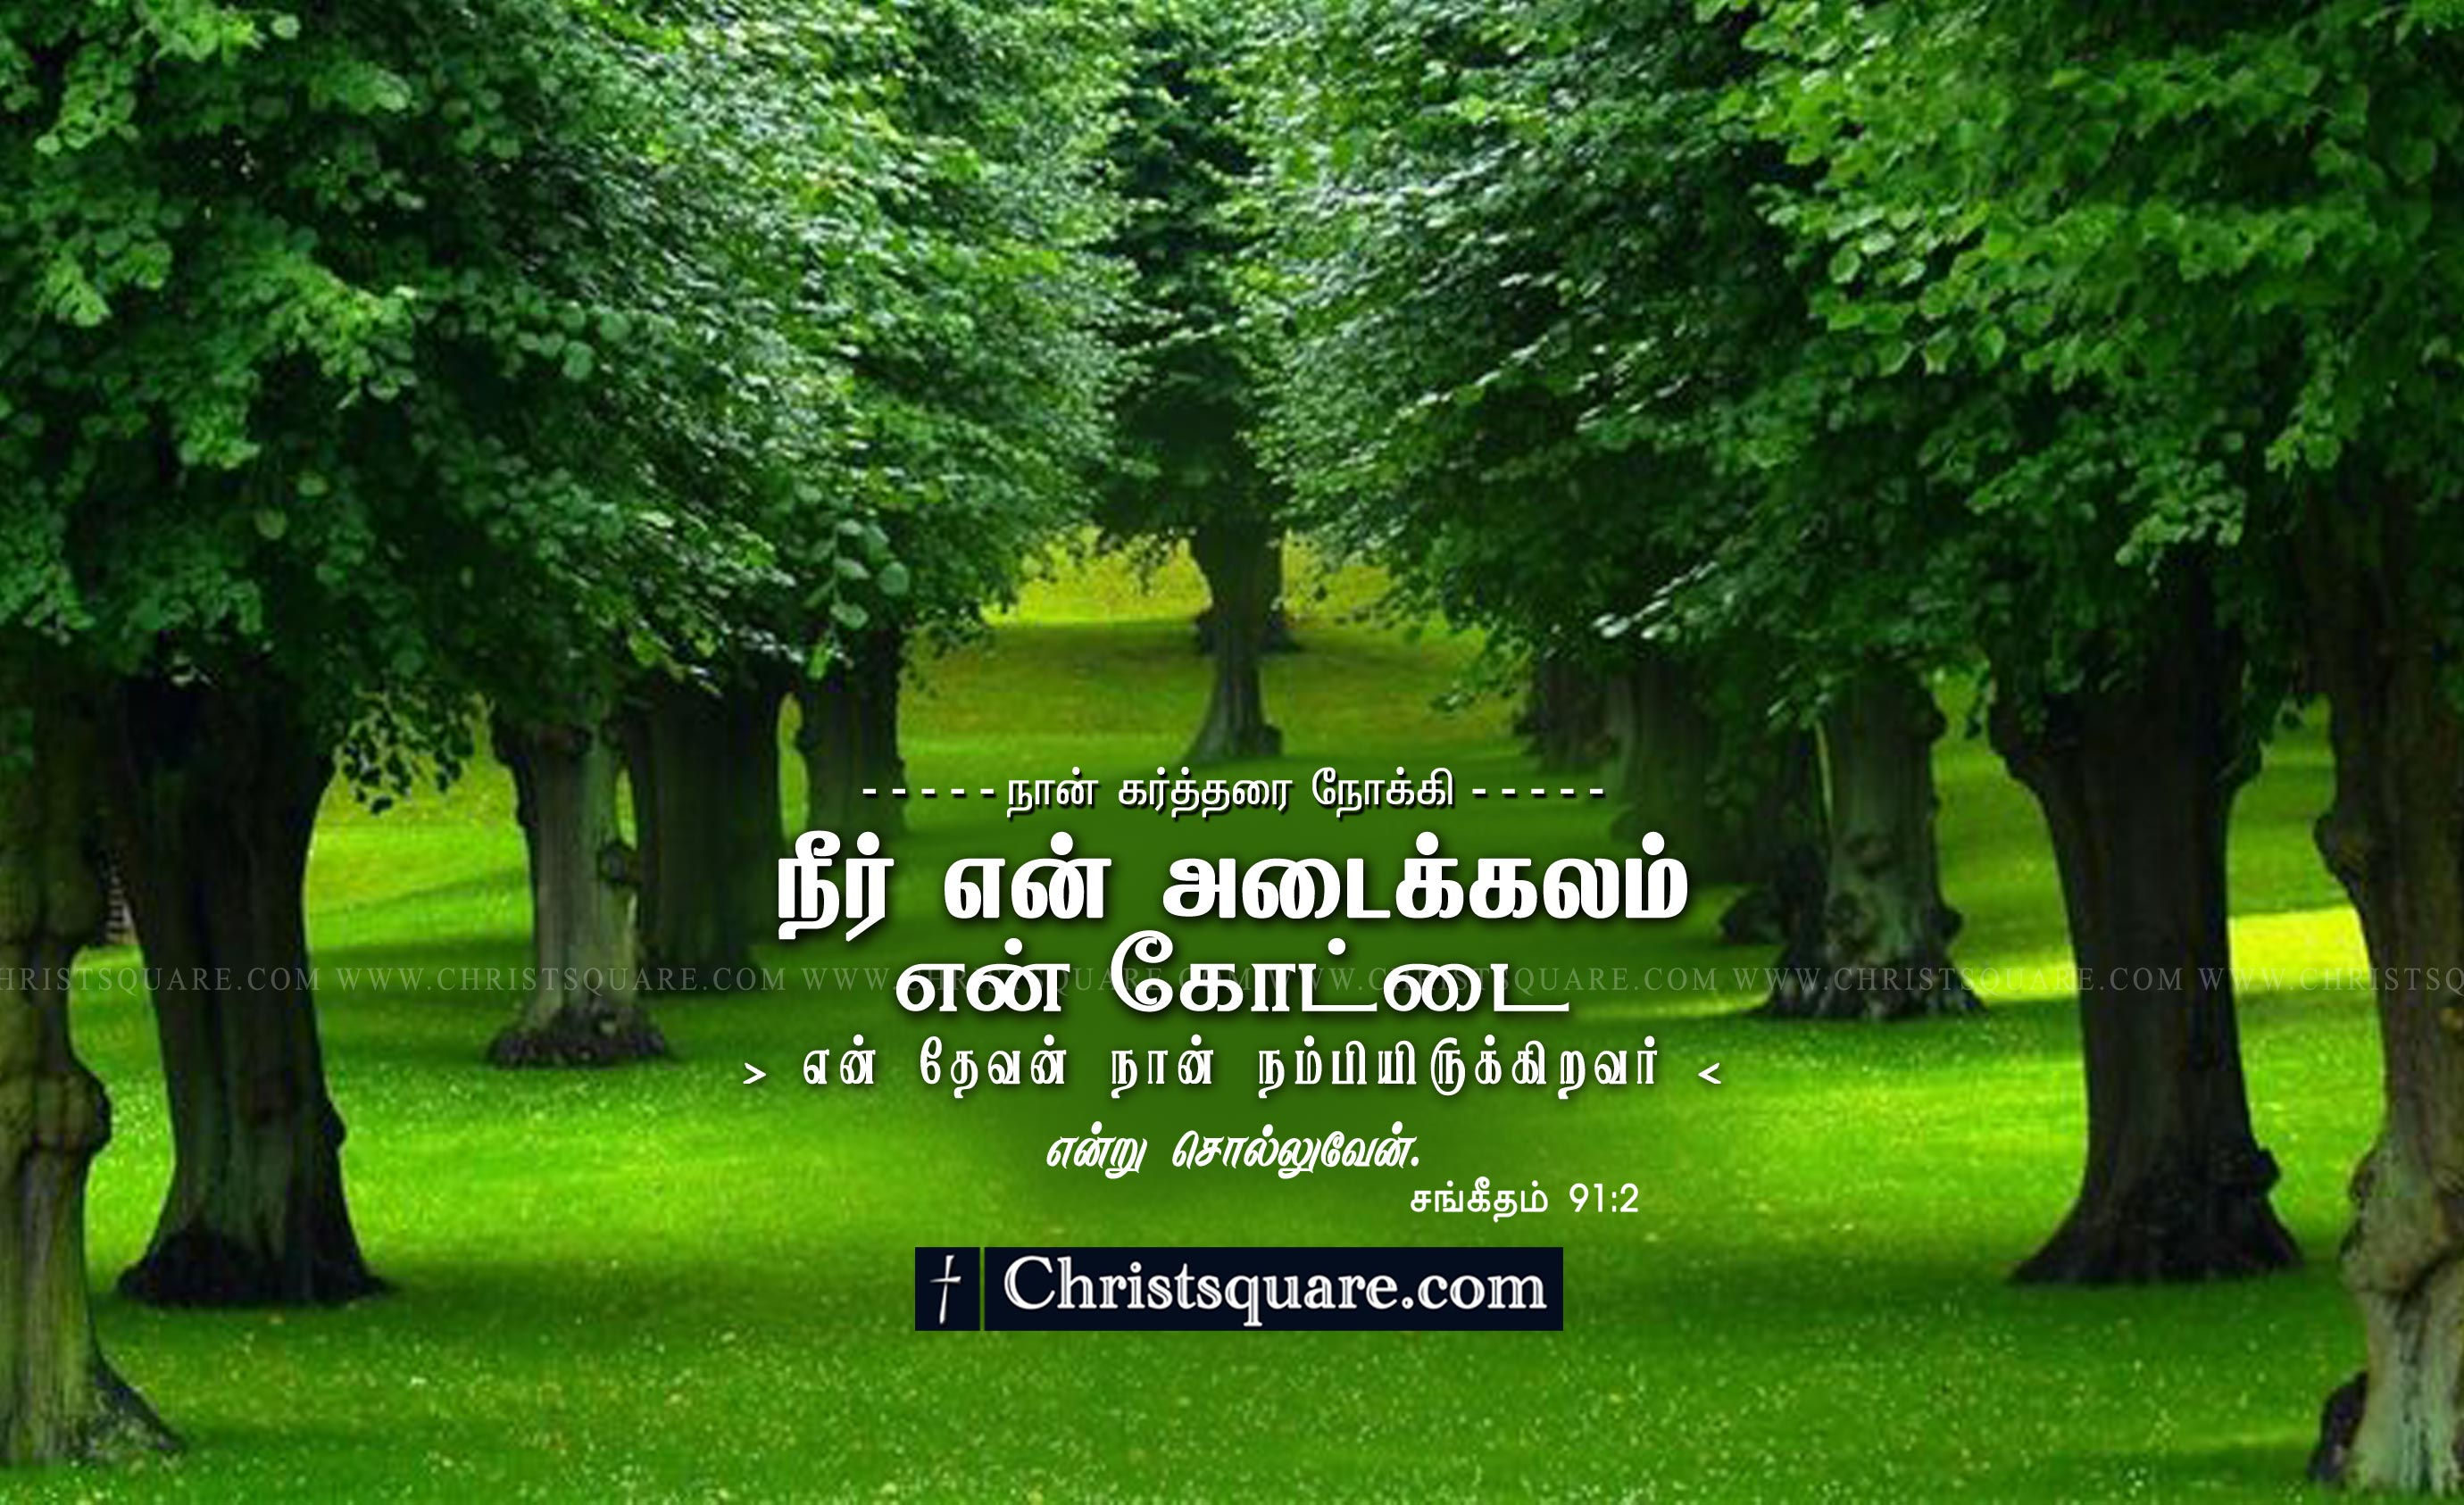 Encouraging Quotes Wallpaper Free Download Download Tamil Bible Words Hd Wallpaper Gallery